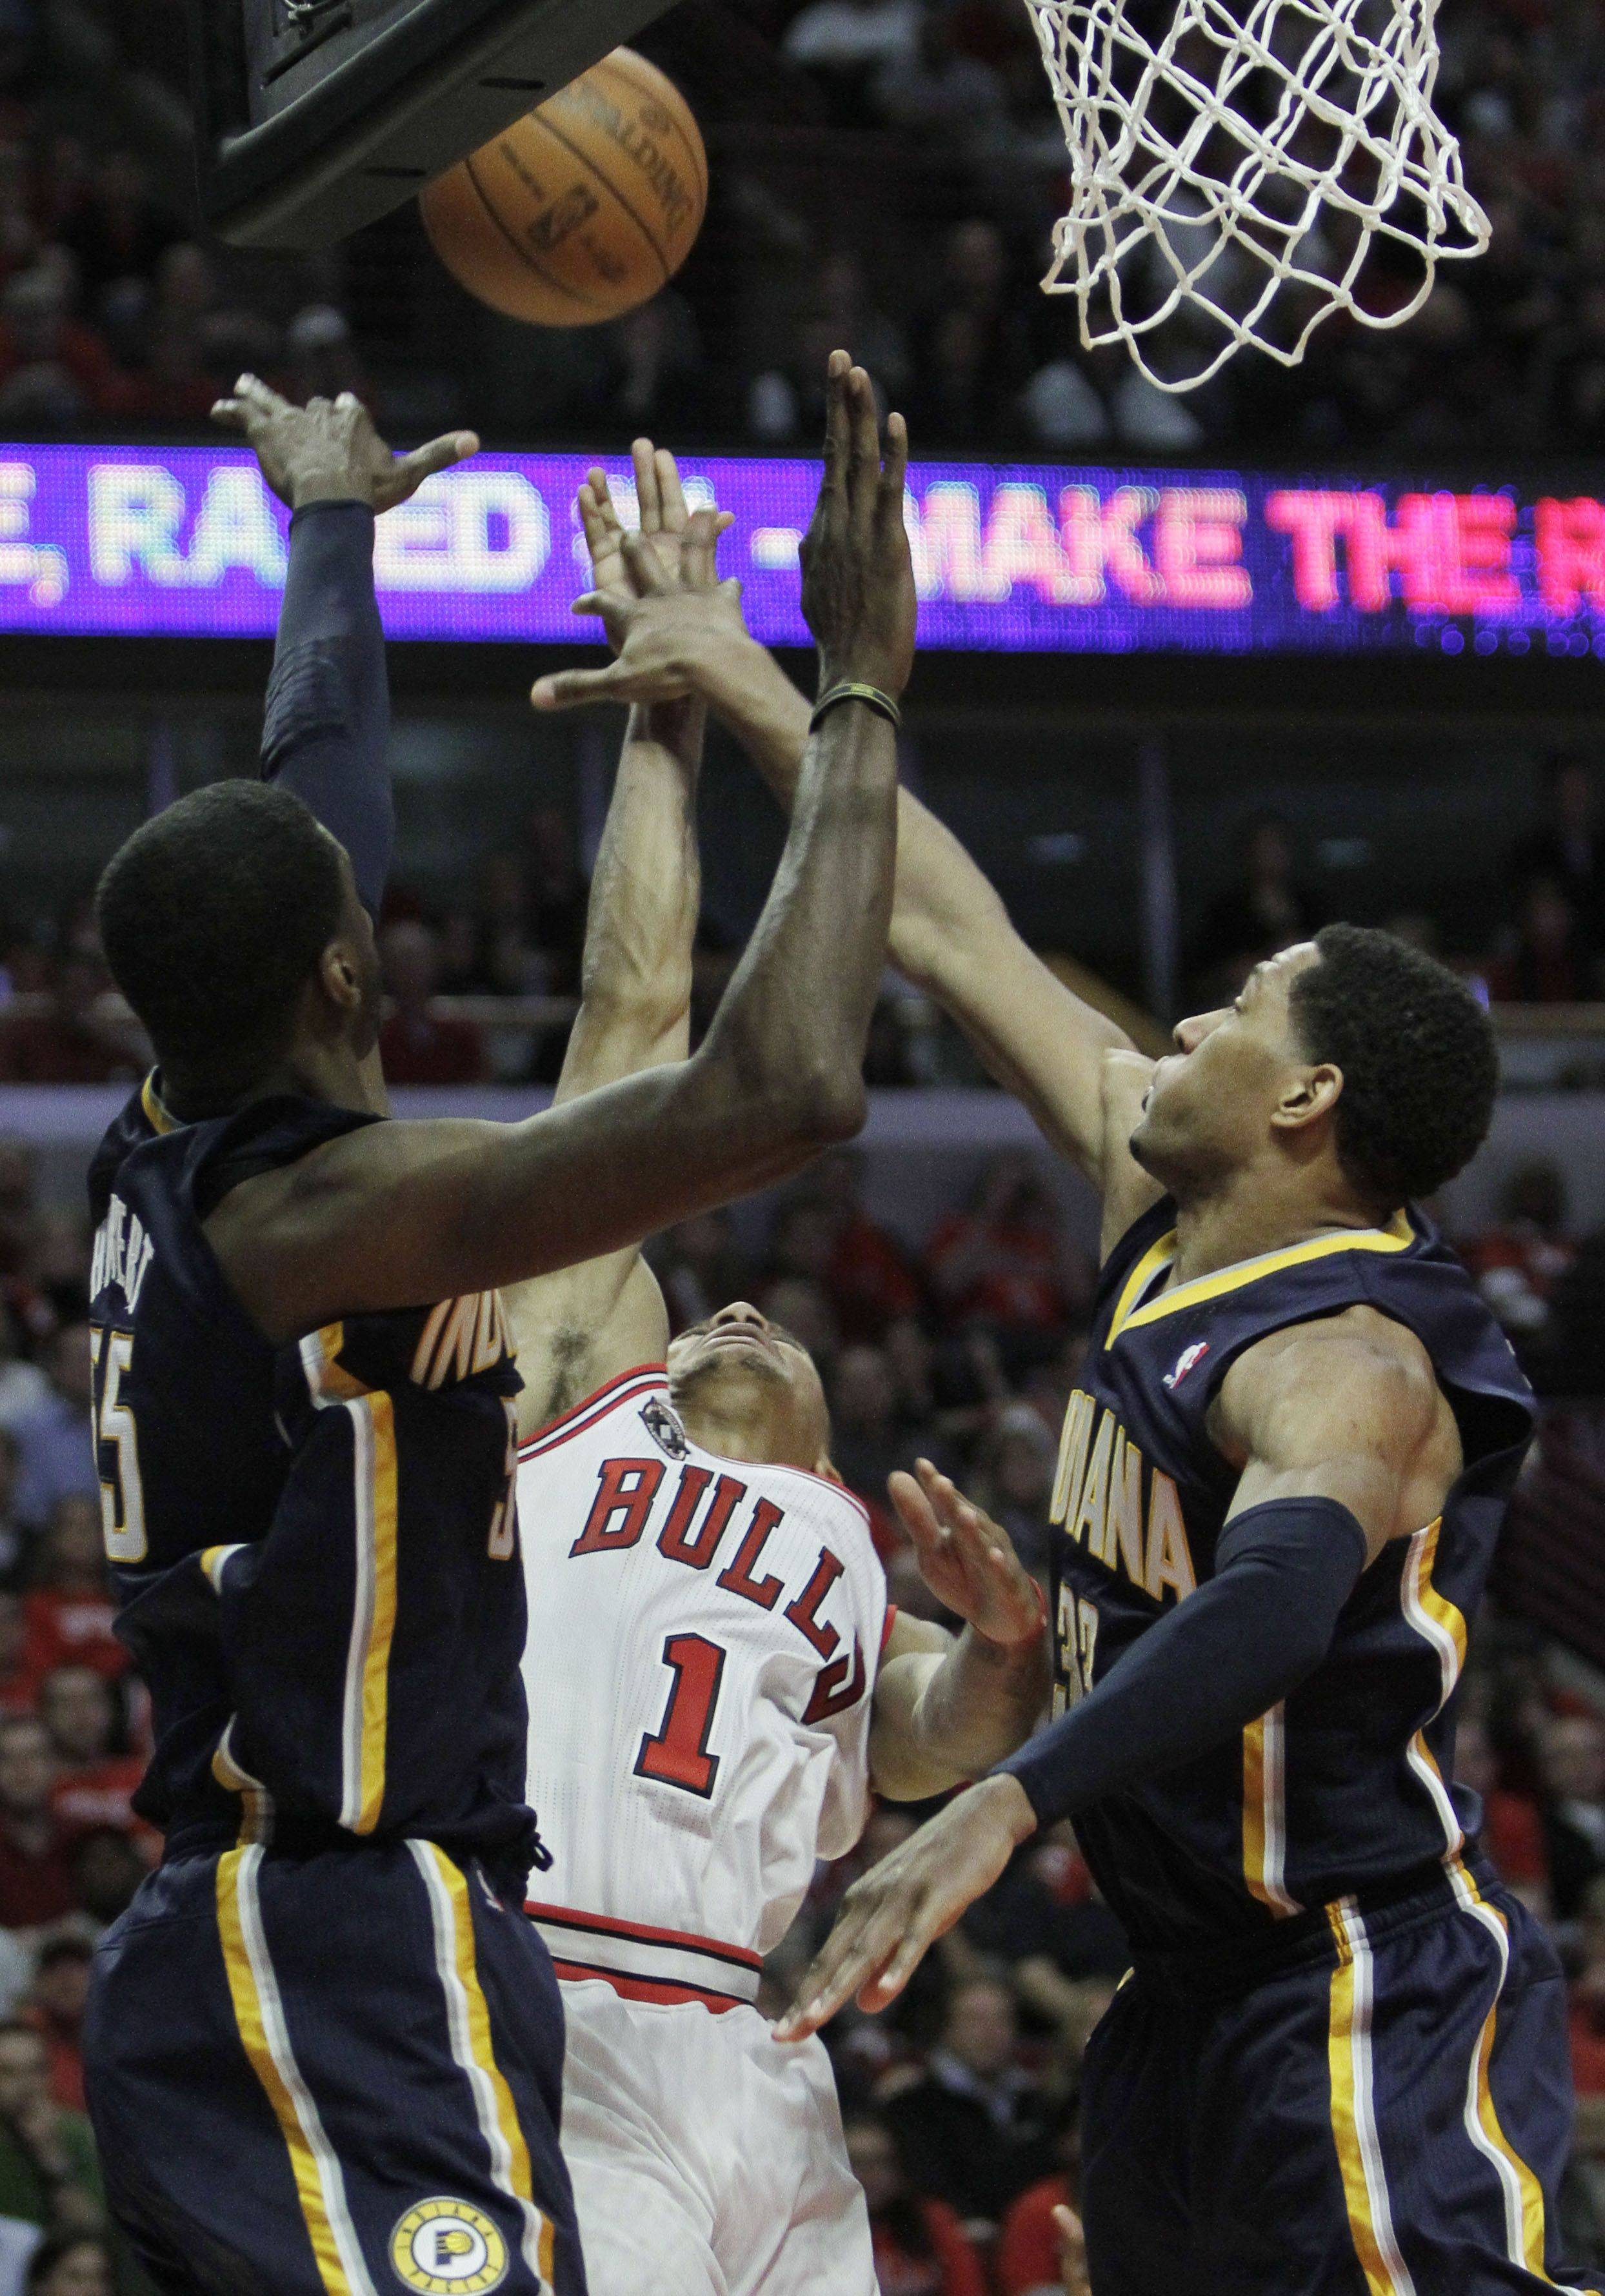 Chicago Bulls' Derrick Rose, center, shoots over Indiana Pacers' Roy Hibbert, left, and Danny Granger during the fourth quarter in Game 2 of a first-round NBA playoff basketball series Monday in Chicago. The Bulls won 96-90.